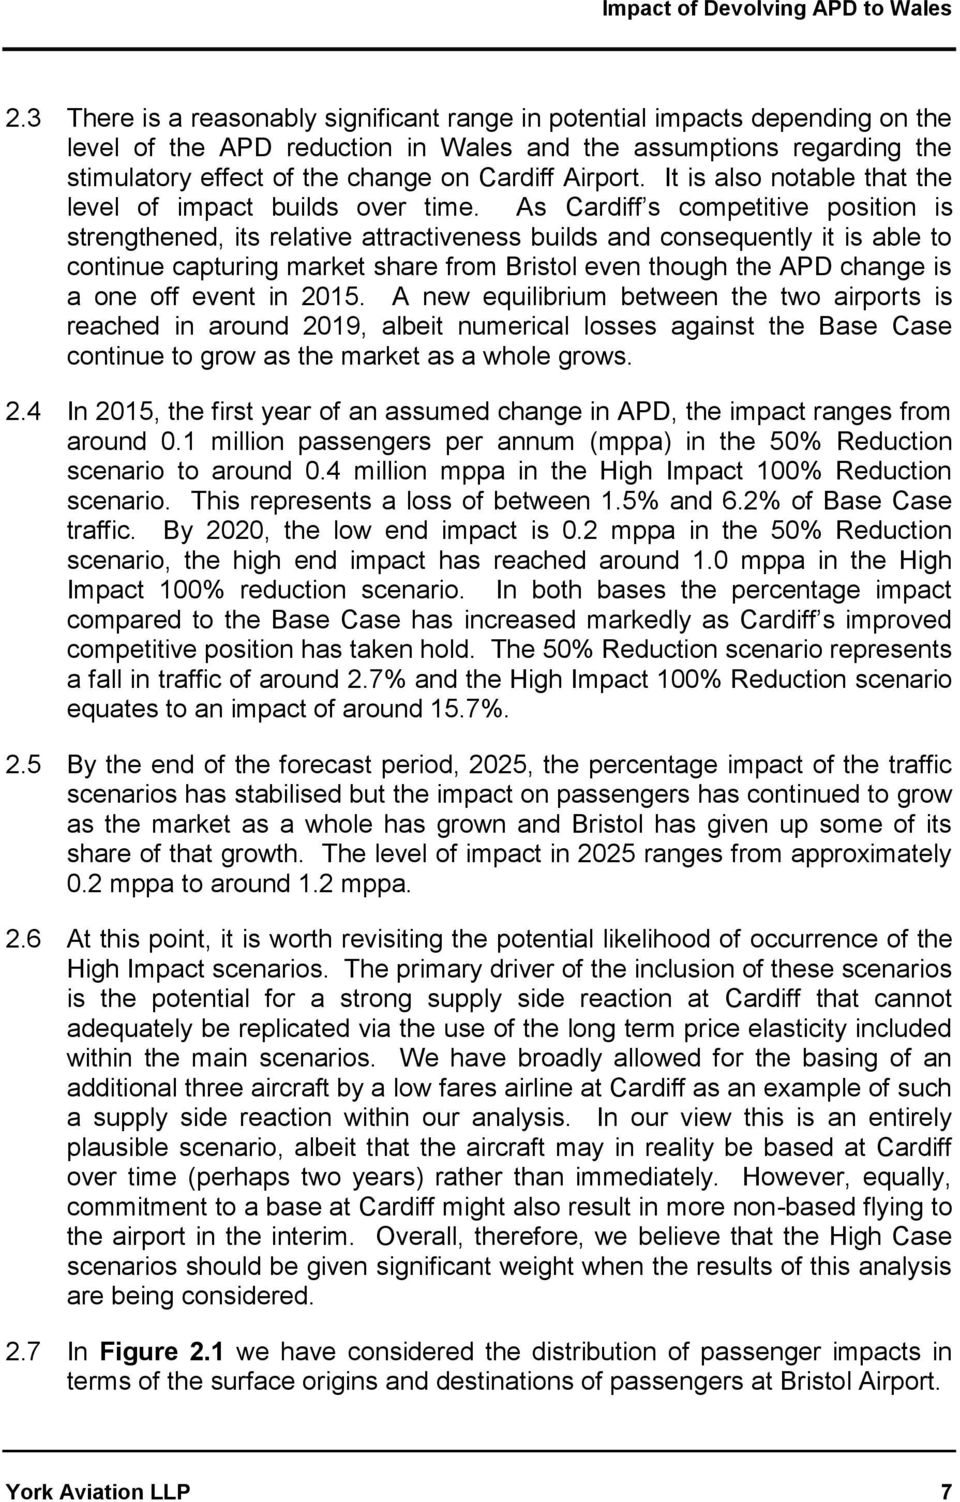 As Cardiff s competitive position is strengthened, its relative attractiveness builds and consequently it is able to continue capturing market share from Bristol even though the APD change is a one